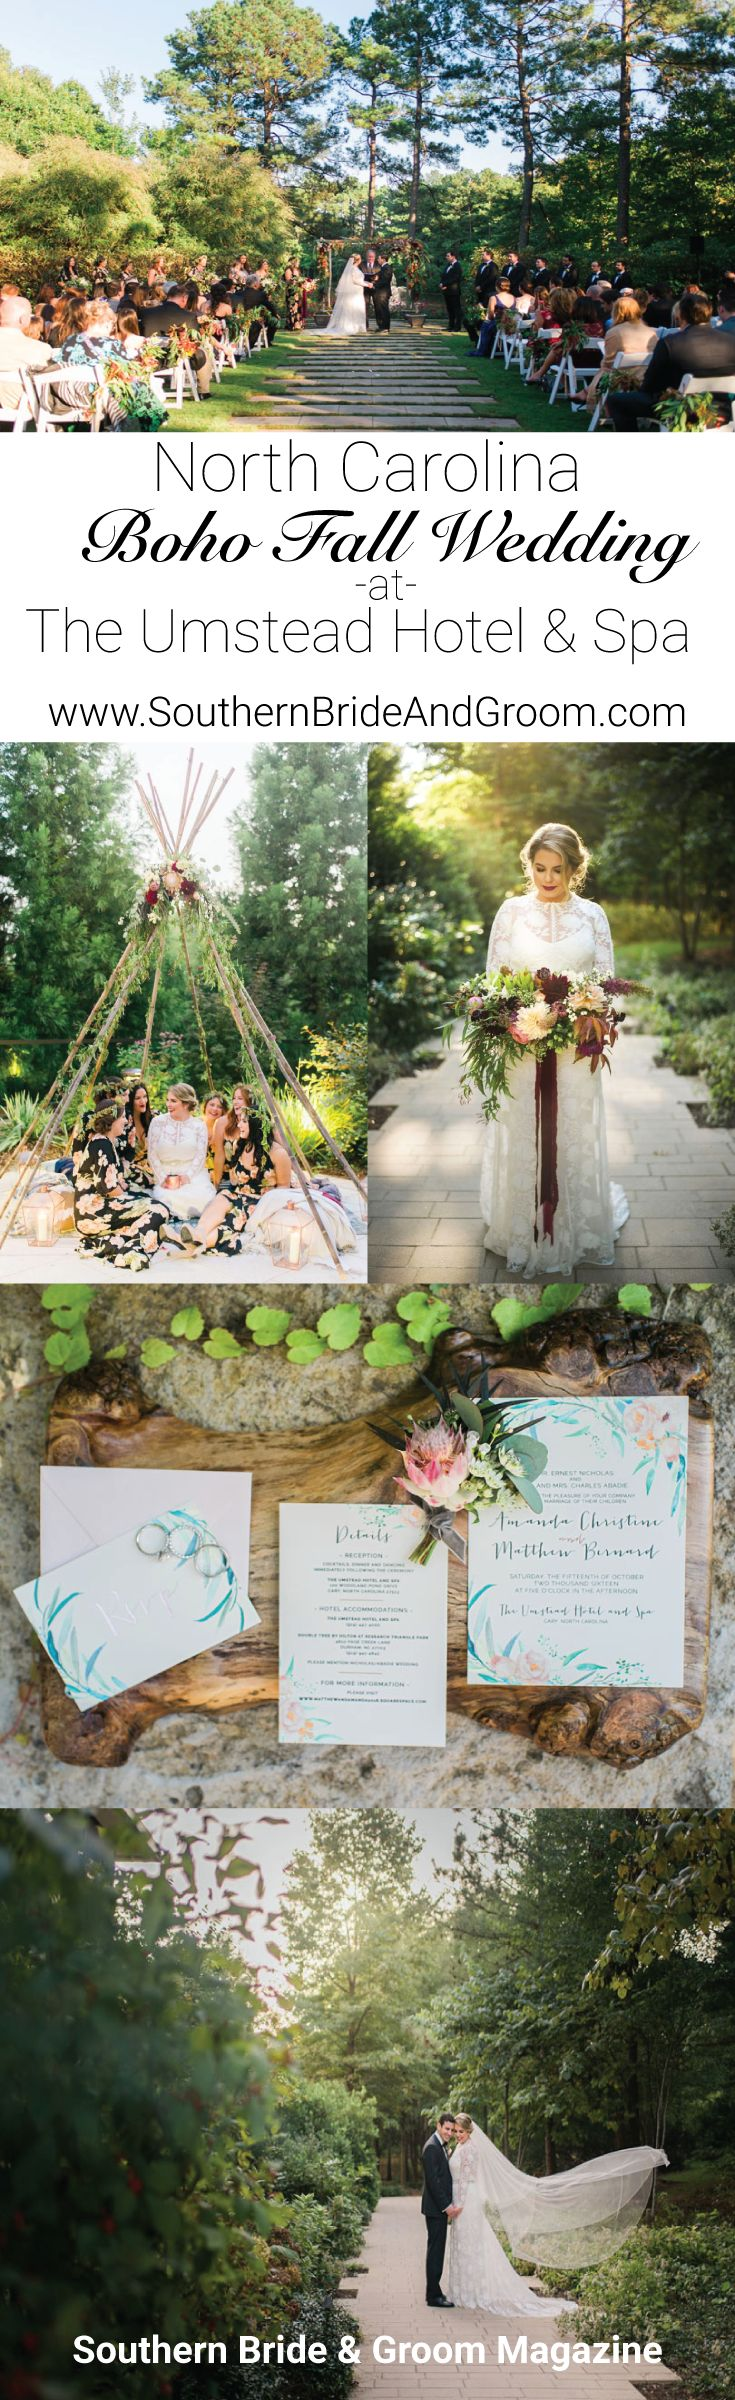 Boho Wedding in Raleigh NC | The Umstead Hotel & Spa | Outdoor Woodsy Nature Filled Wedding in NC | Teepee and Floral Filled Wedding | Burgundy Wedding Colors |  Southern Bride and Groom Magazine | Bohemian Bride | Boho Wedding Dress